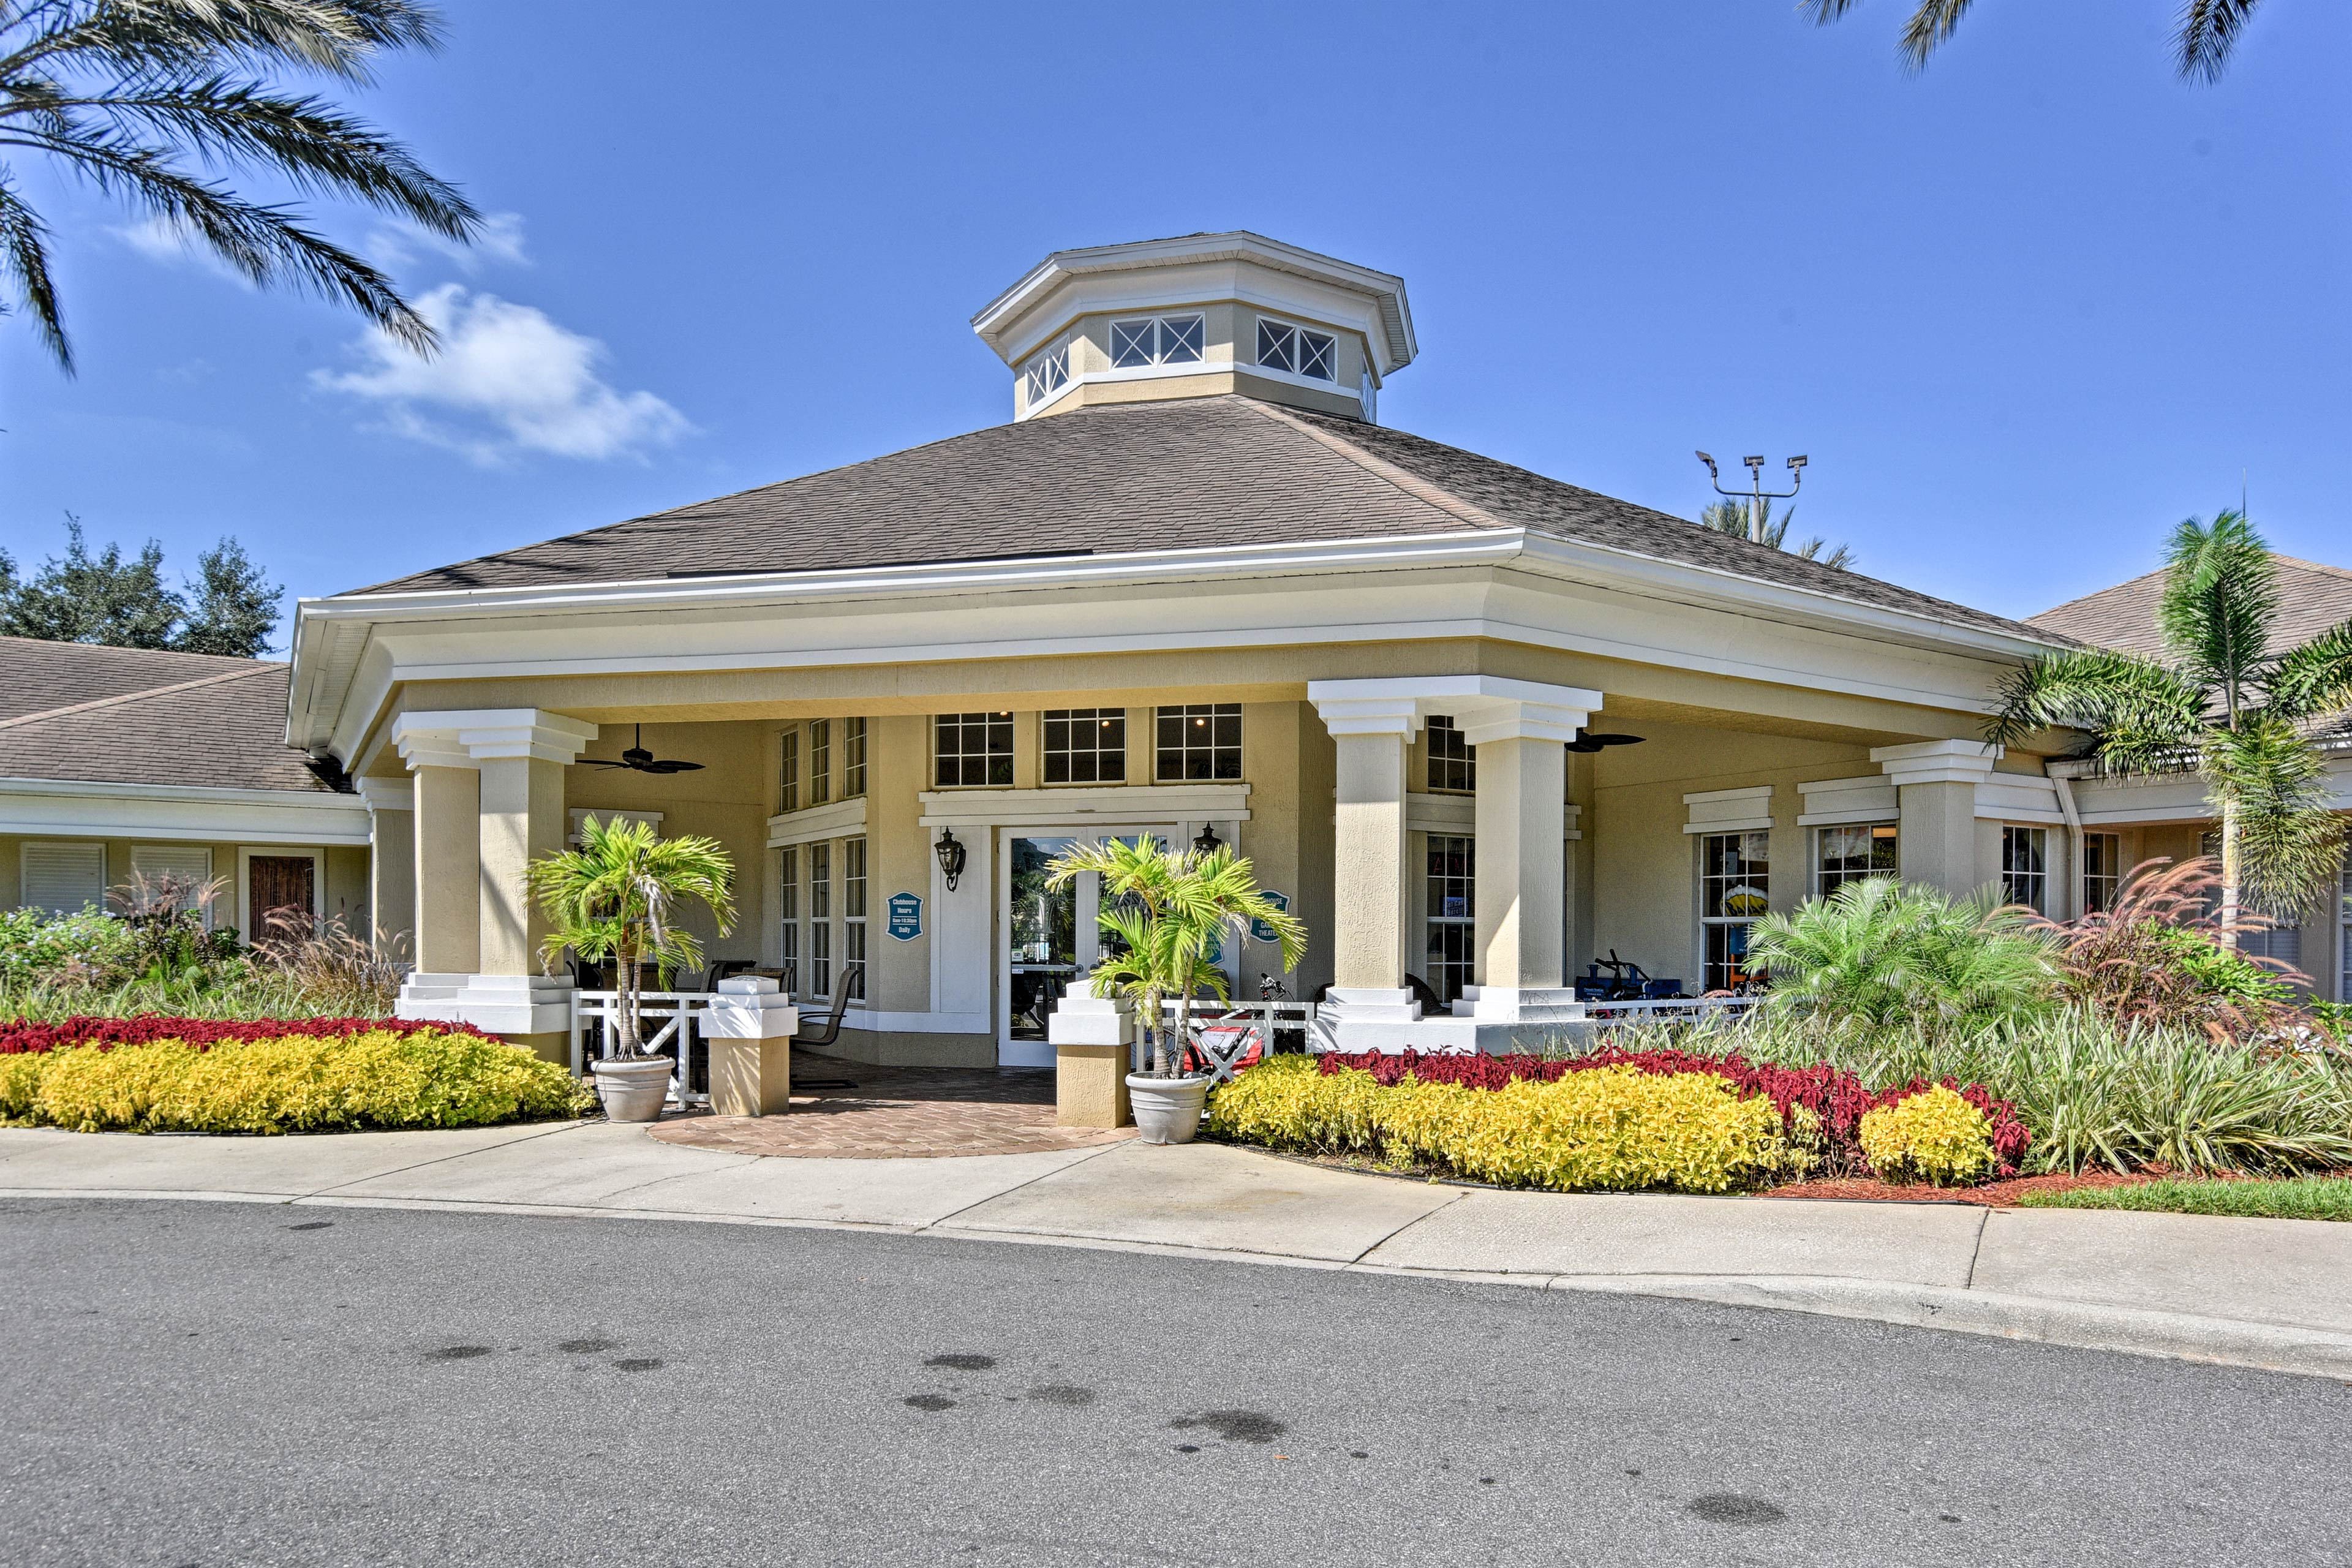 Enjoy access to the community clubhouse in this gated and guarded neighborhood.